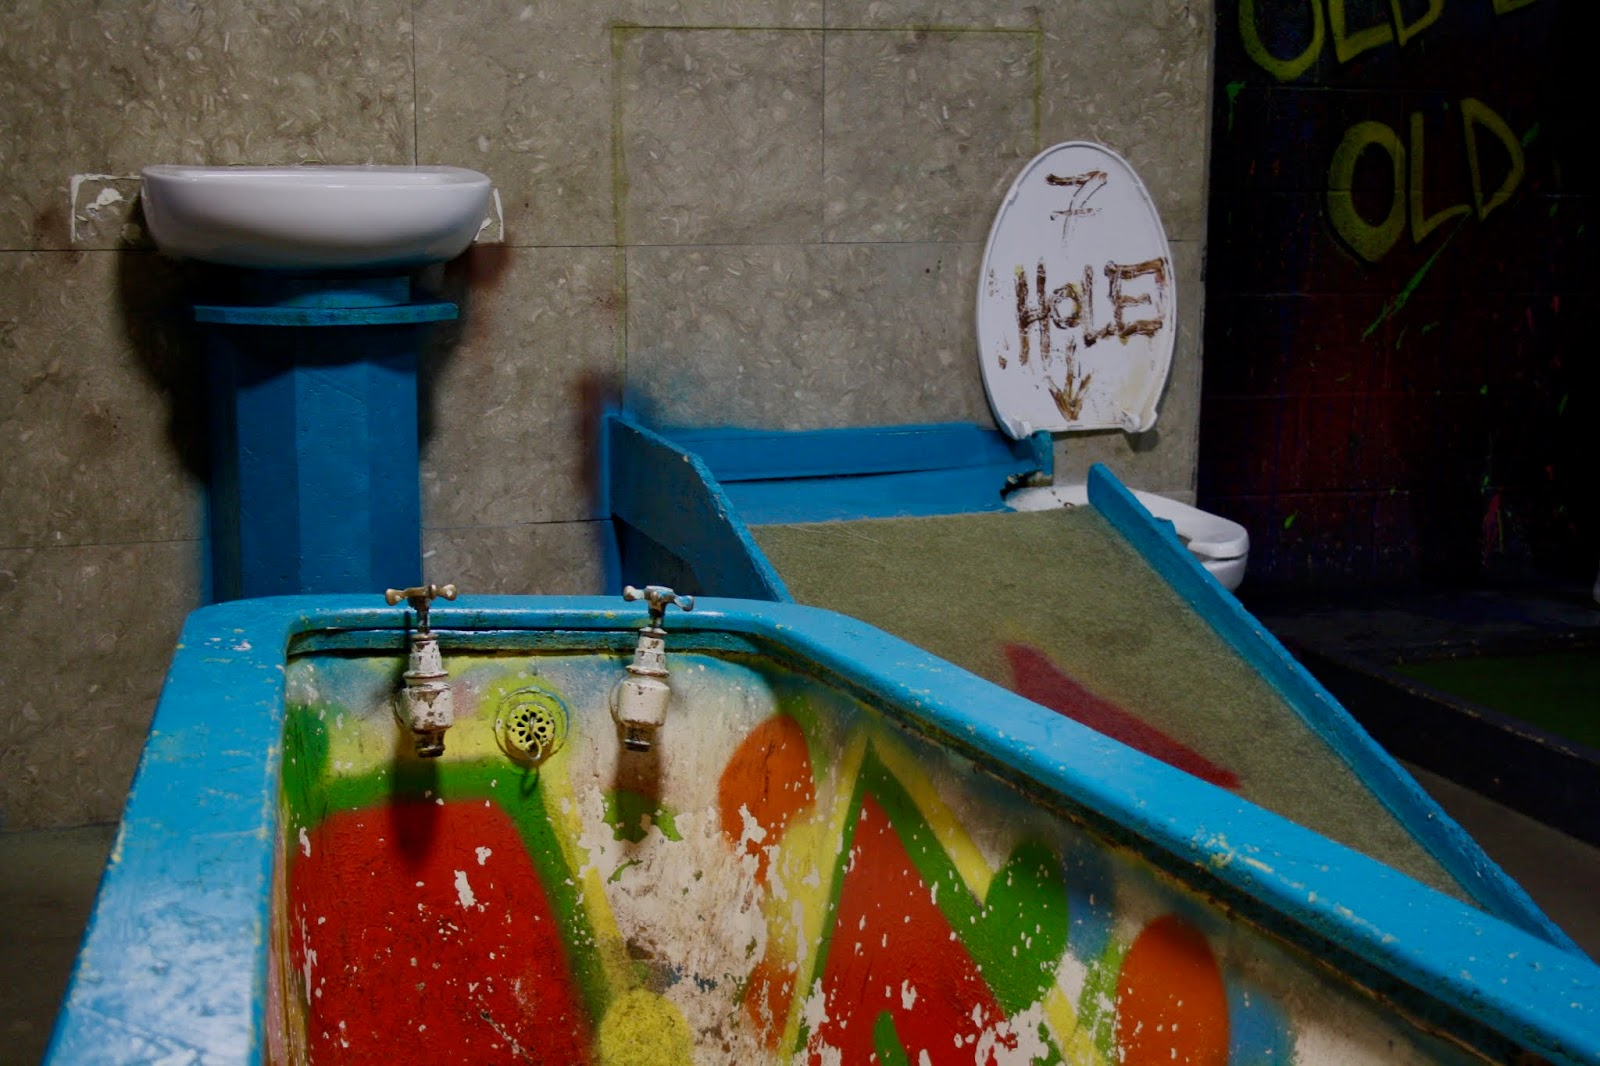 a toilet themed mini golf hole at Ghetto Golf, Digbeth, Birmingham